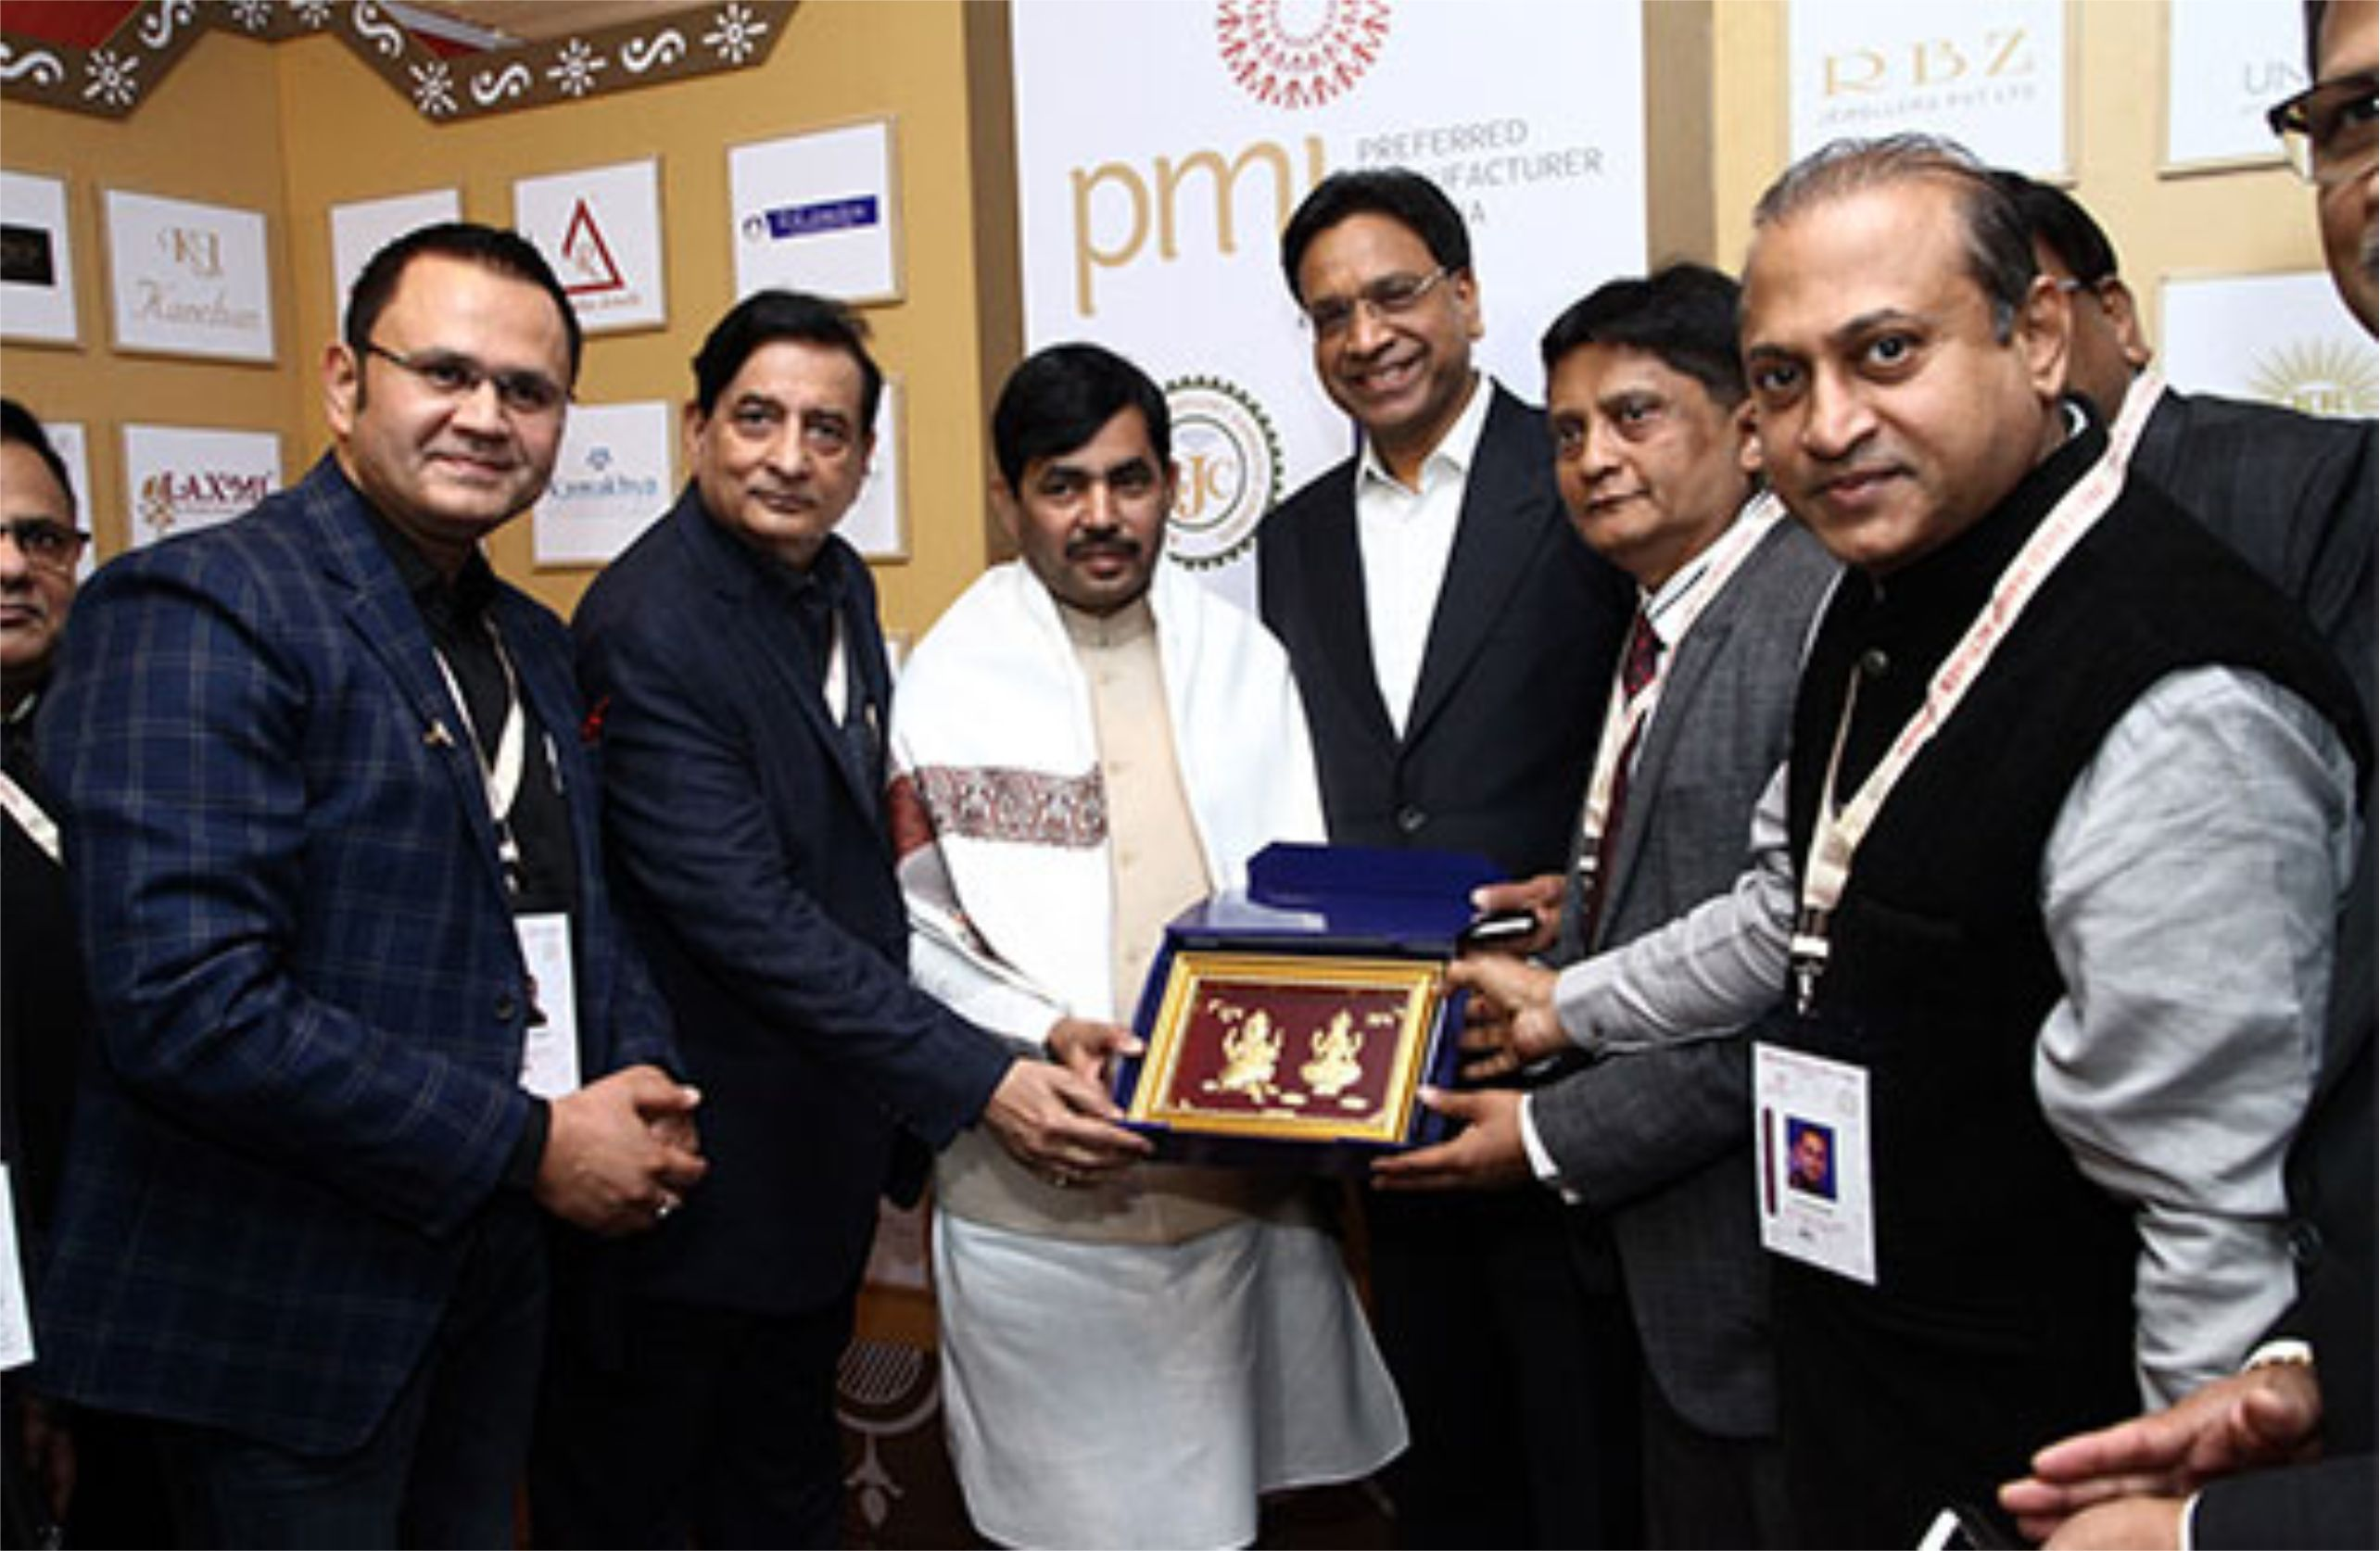 GJC's Preferred Manufacturers of India (PMI – 4) Show Opens at Jaipur